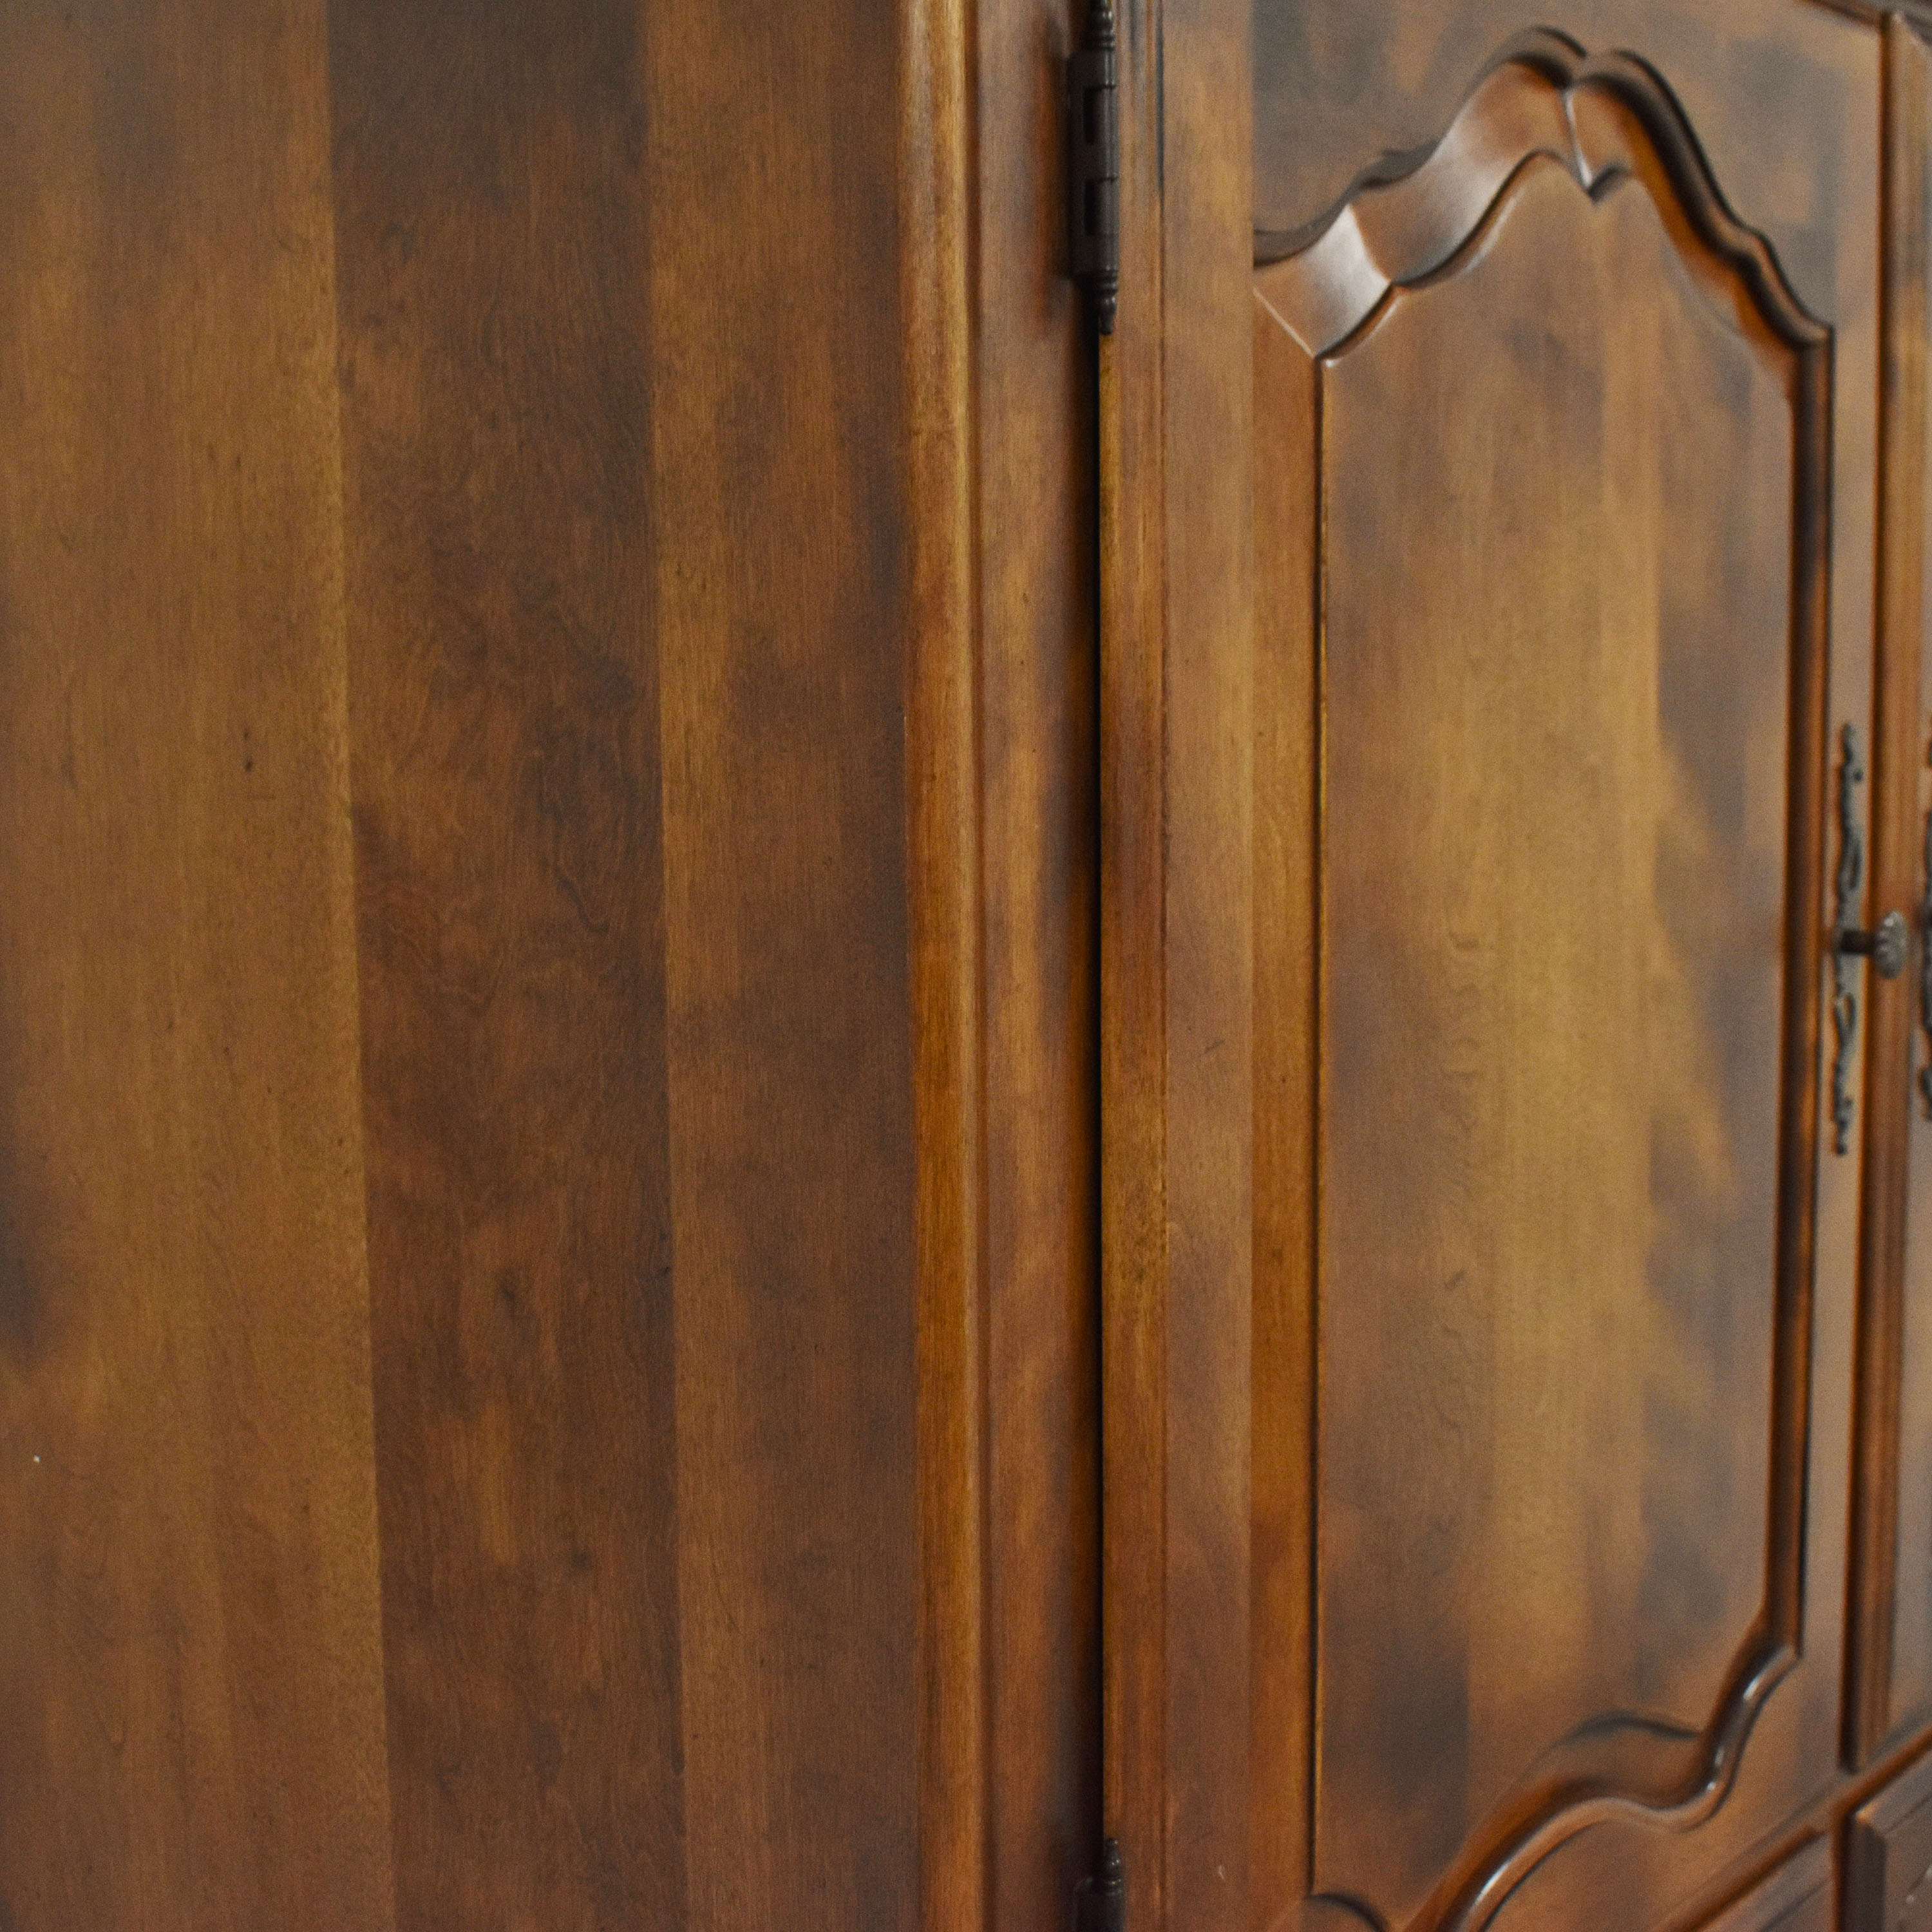 Ethan Allen Ethan Allen French Country Armoire Wardrobes & Armoires